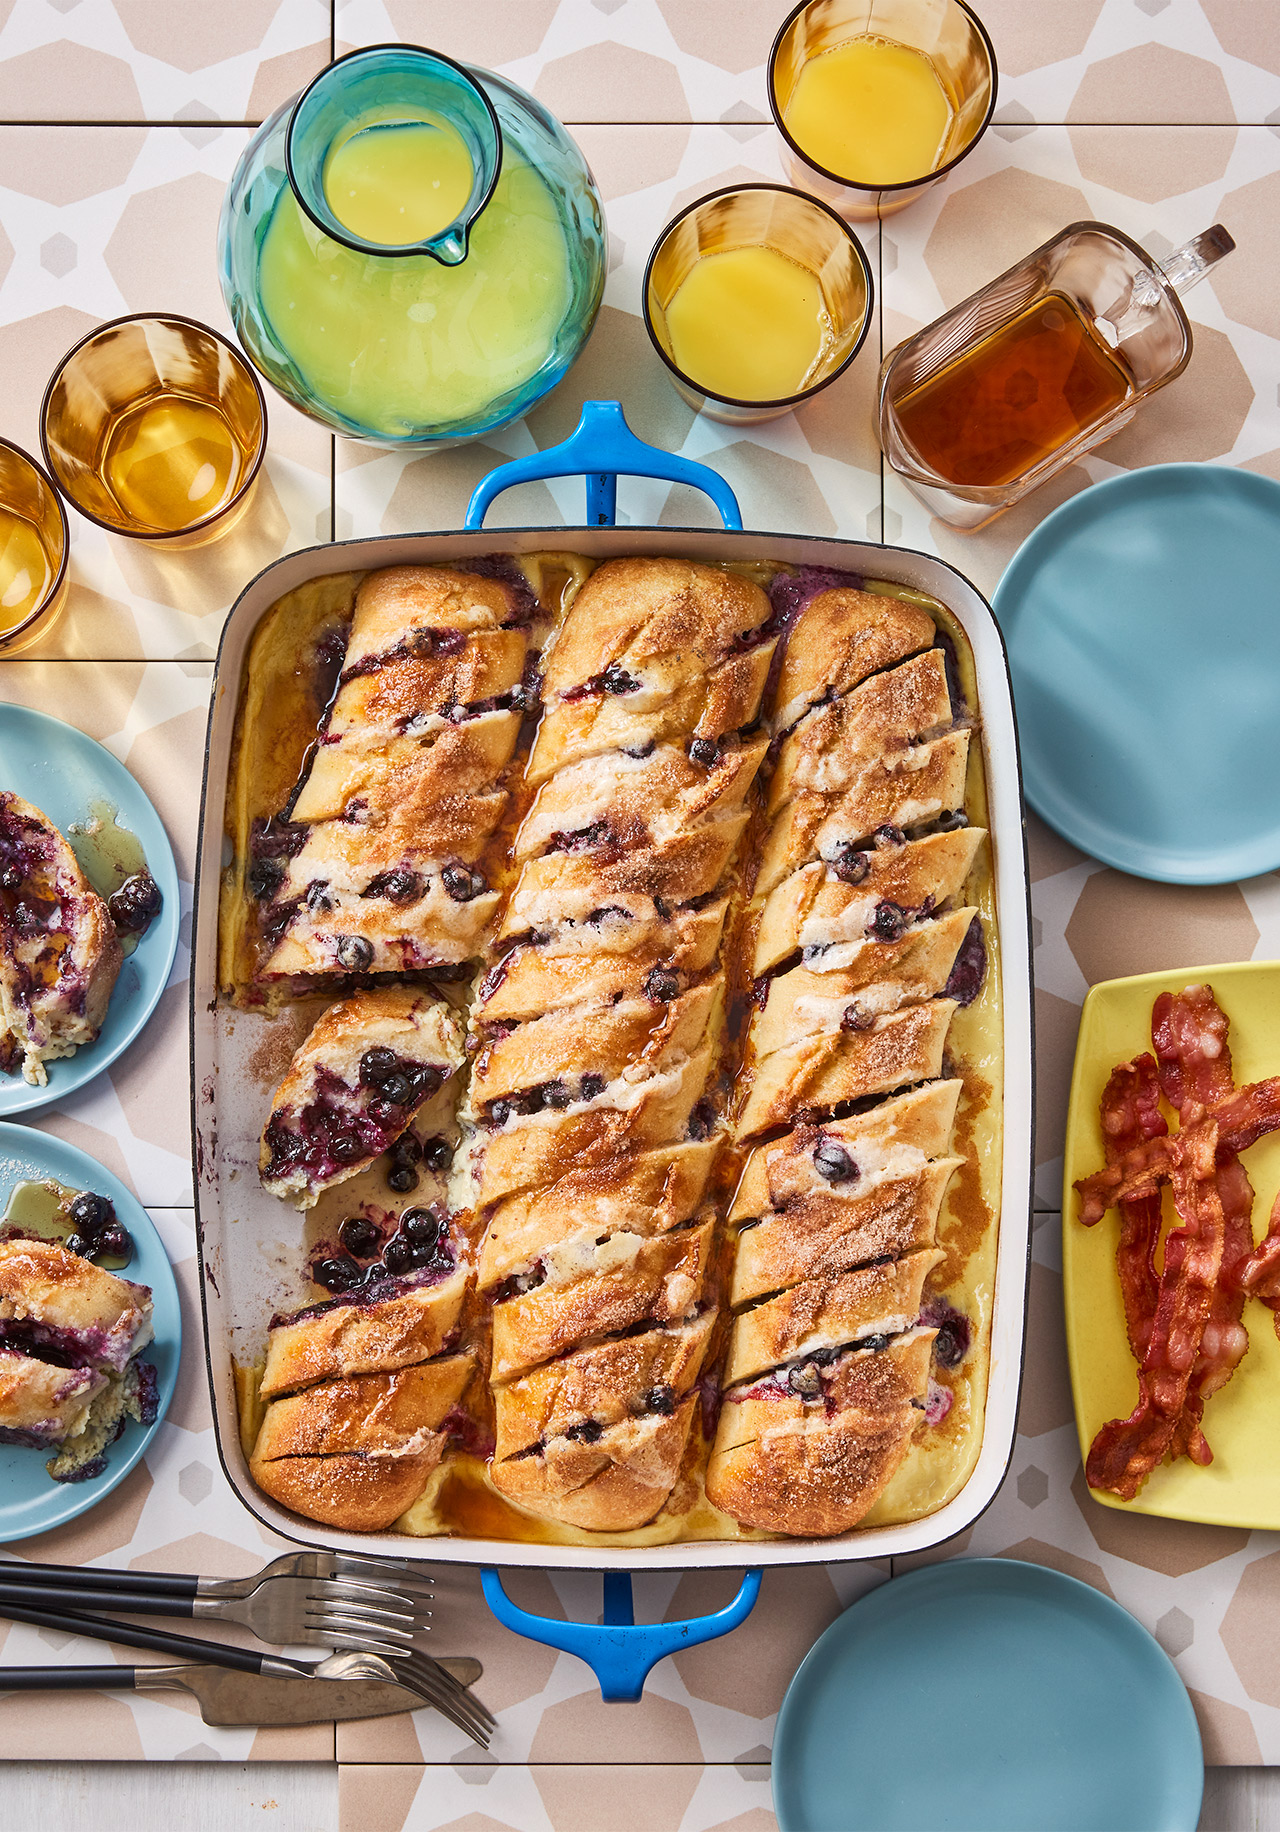 Blueberry- and Mascarpone-Stuffed French Toast Casserole